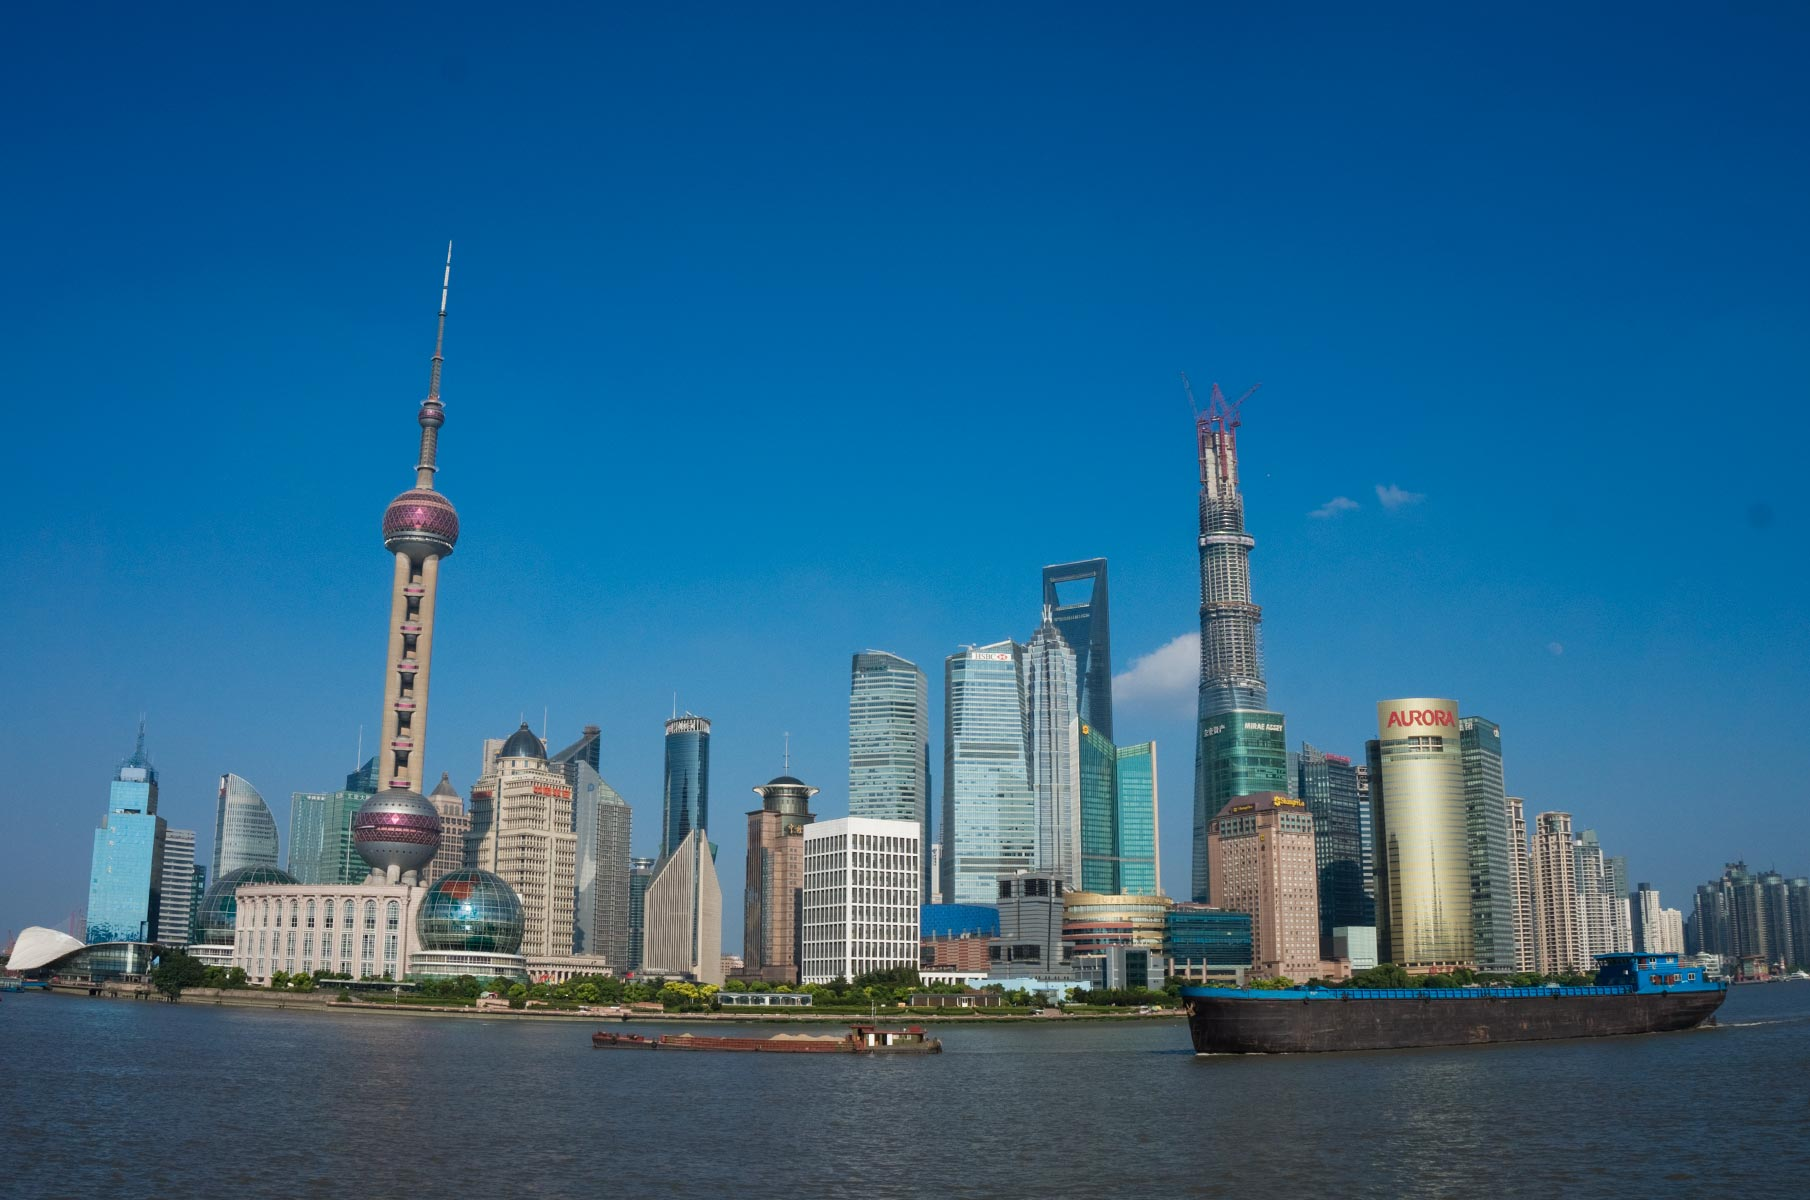 Pudong Skyline am Tag mit blauem Himmel in Shanghai, China